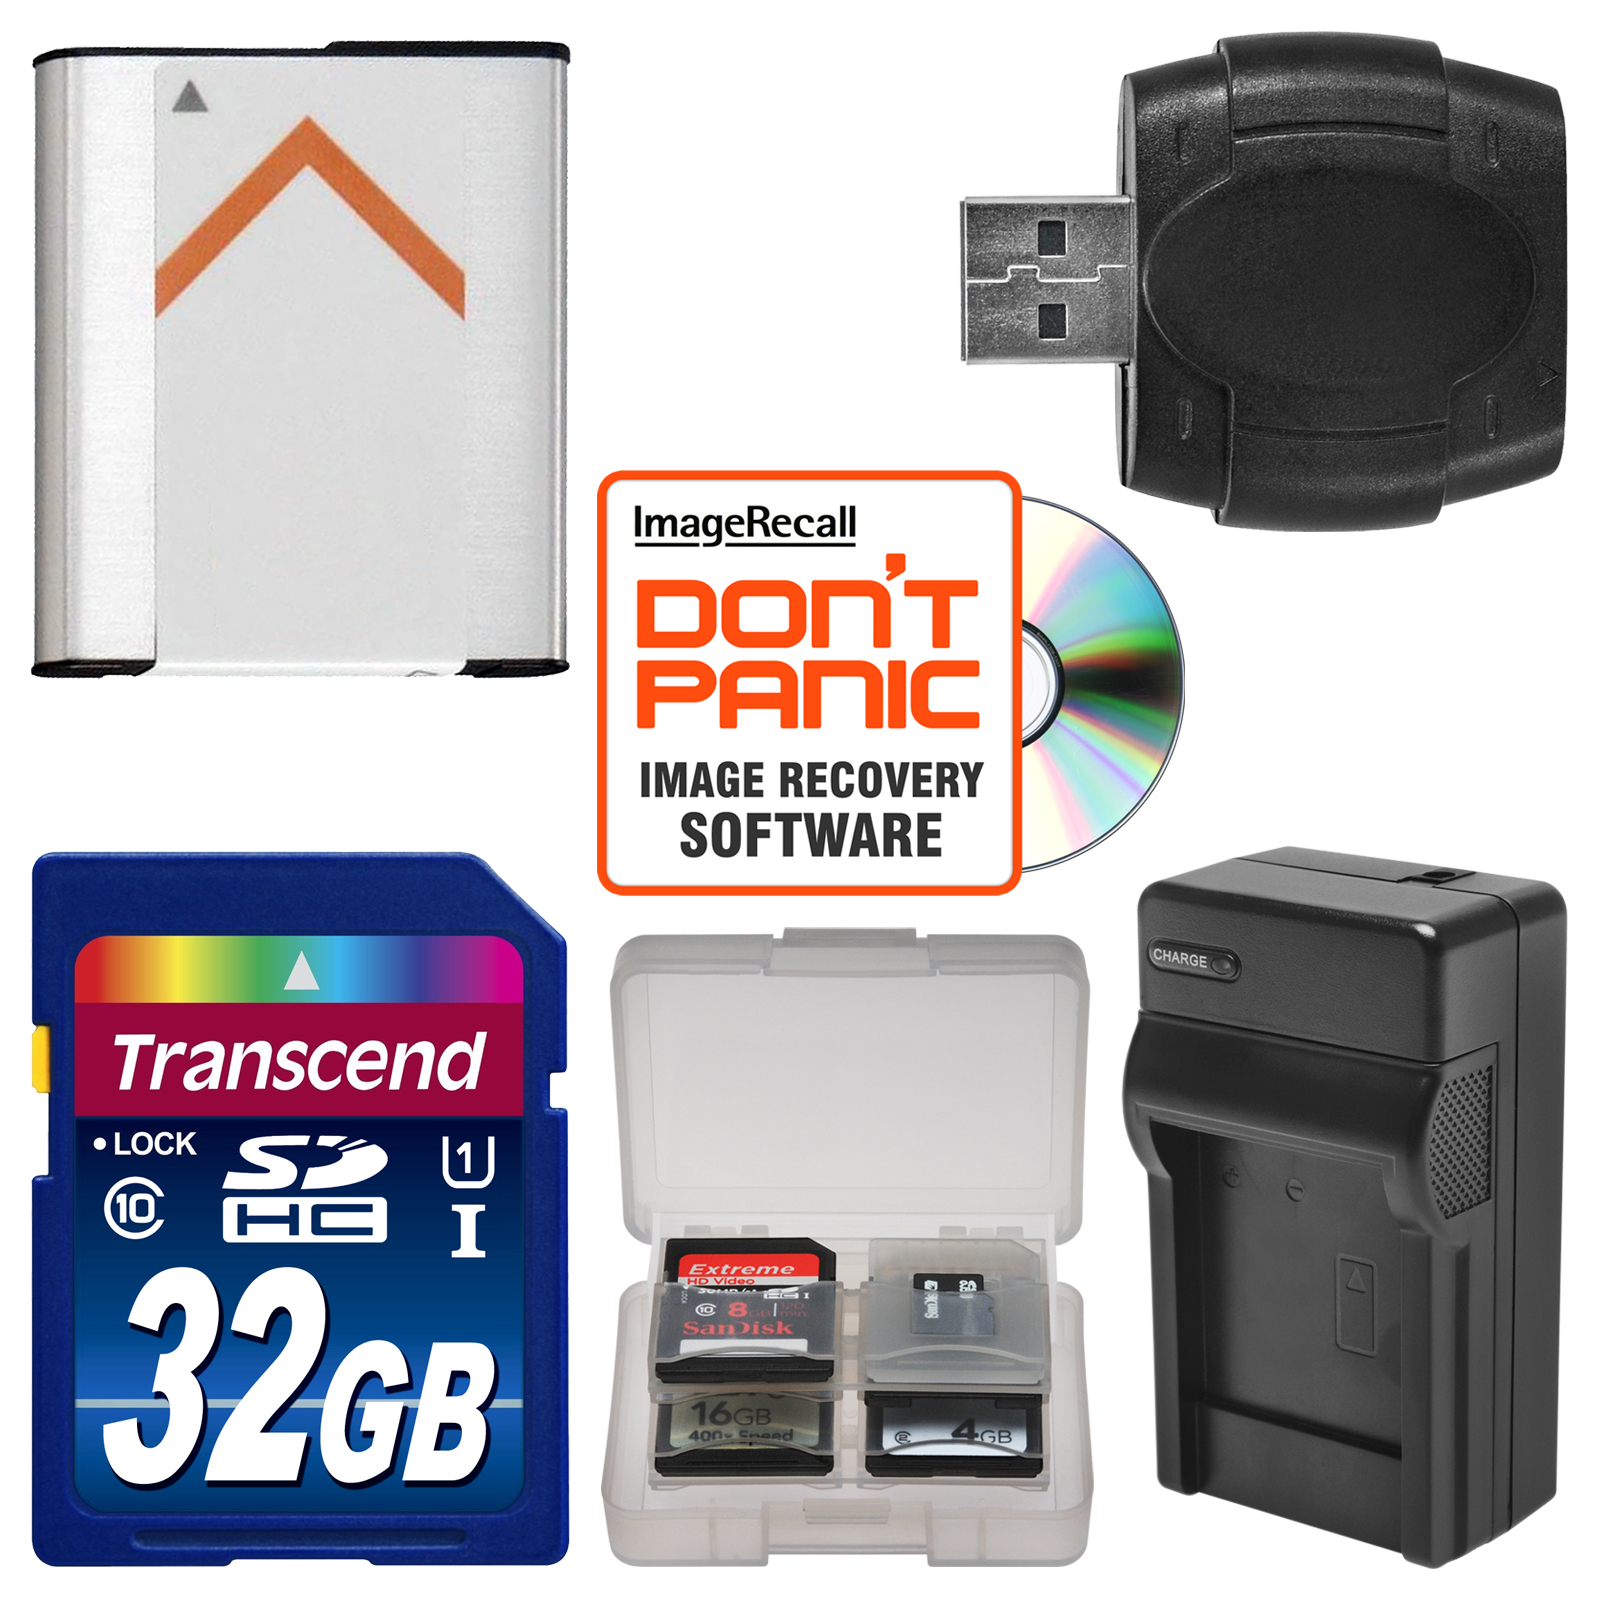 NP-BN1 Battery & Charger + 32GB SD Card Essential Bundle for Sony Cyber-Shot DSC-TF1, TX30, W710, W730, W830, WX80 Digital Camera